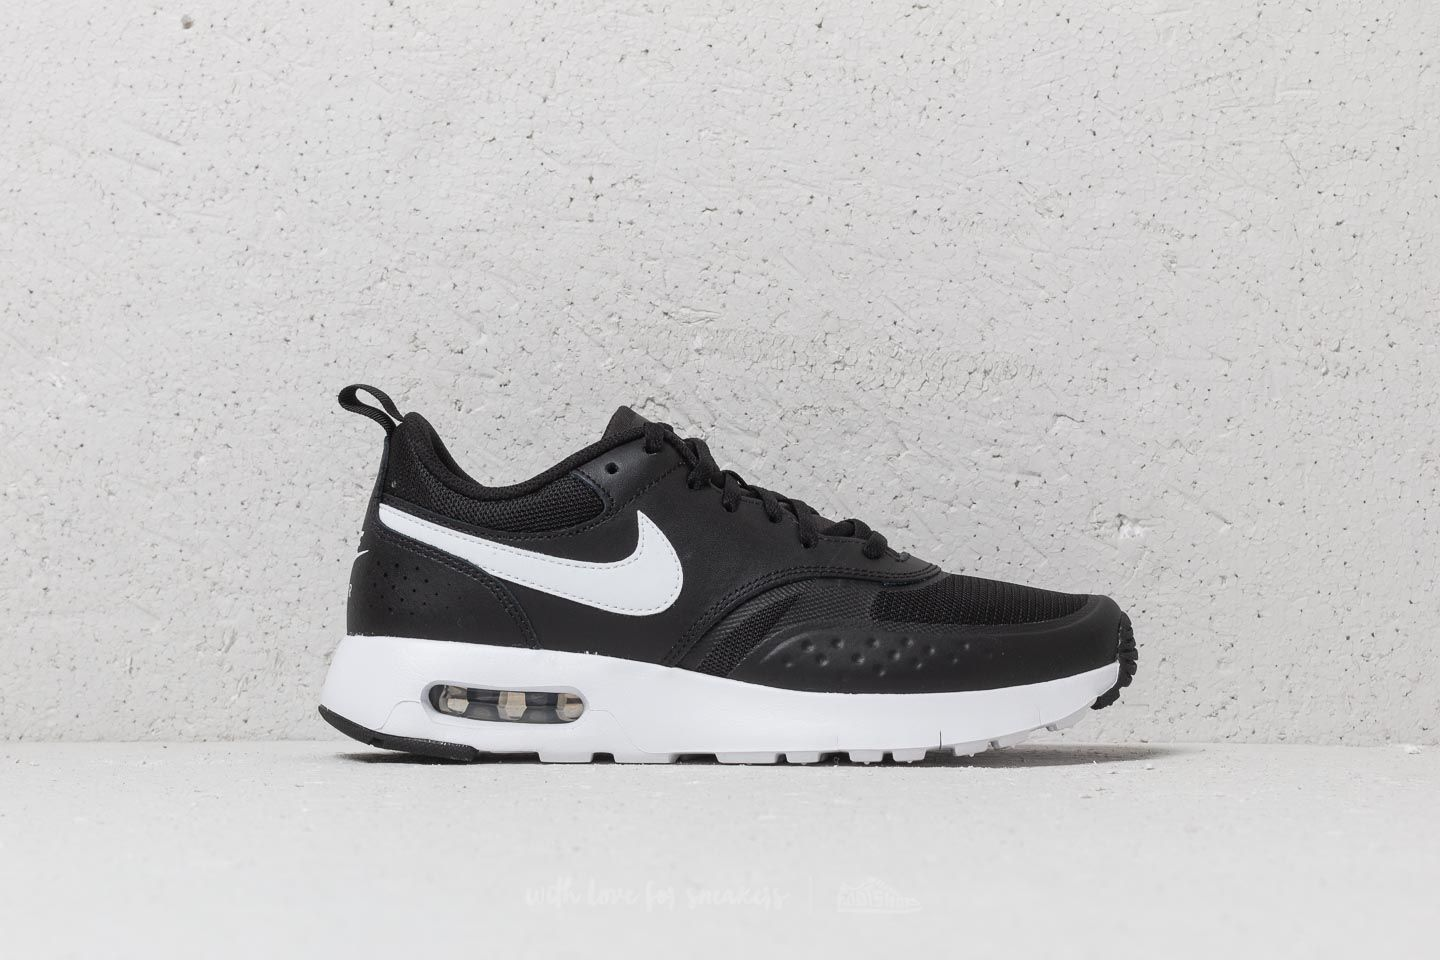 purchase cheap 4f828 fda42 Nike Air Max Vision (GS) Black/ White-Black za skvělou cenu 2